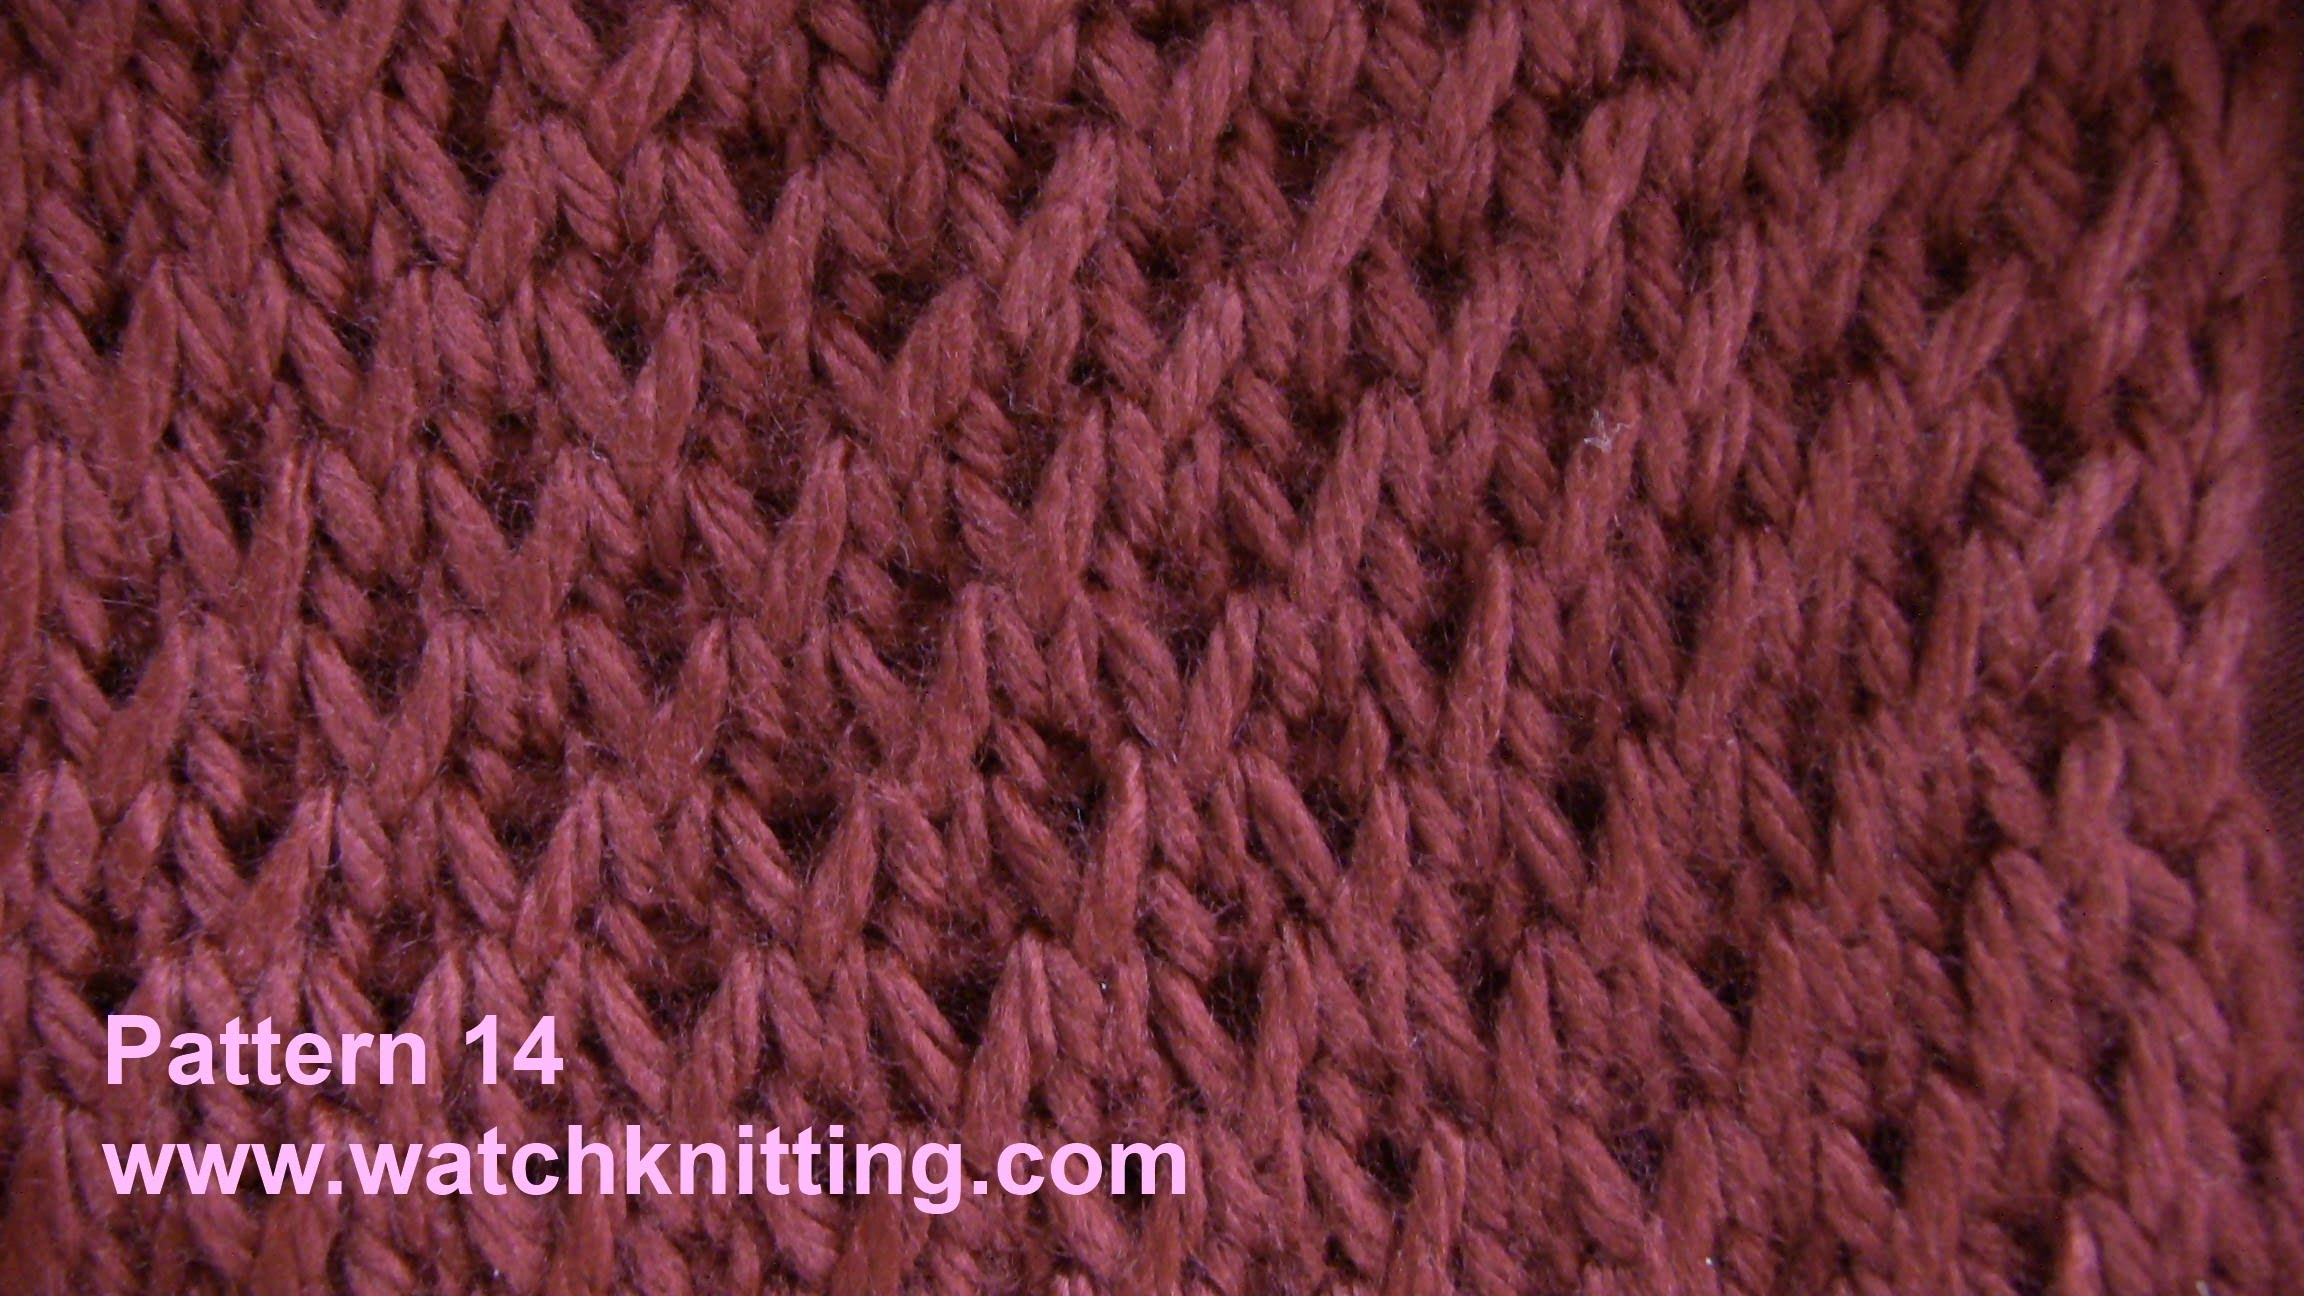 simple knitting patterns simulated brioche stitch - free knitting tutorial - watch knitting - pattern mkkczes